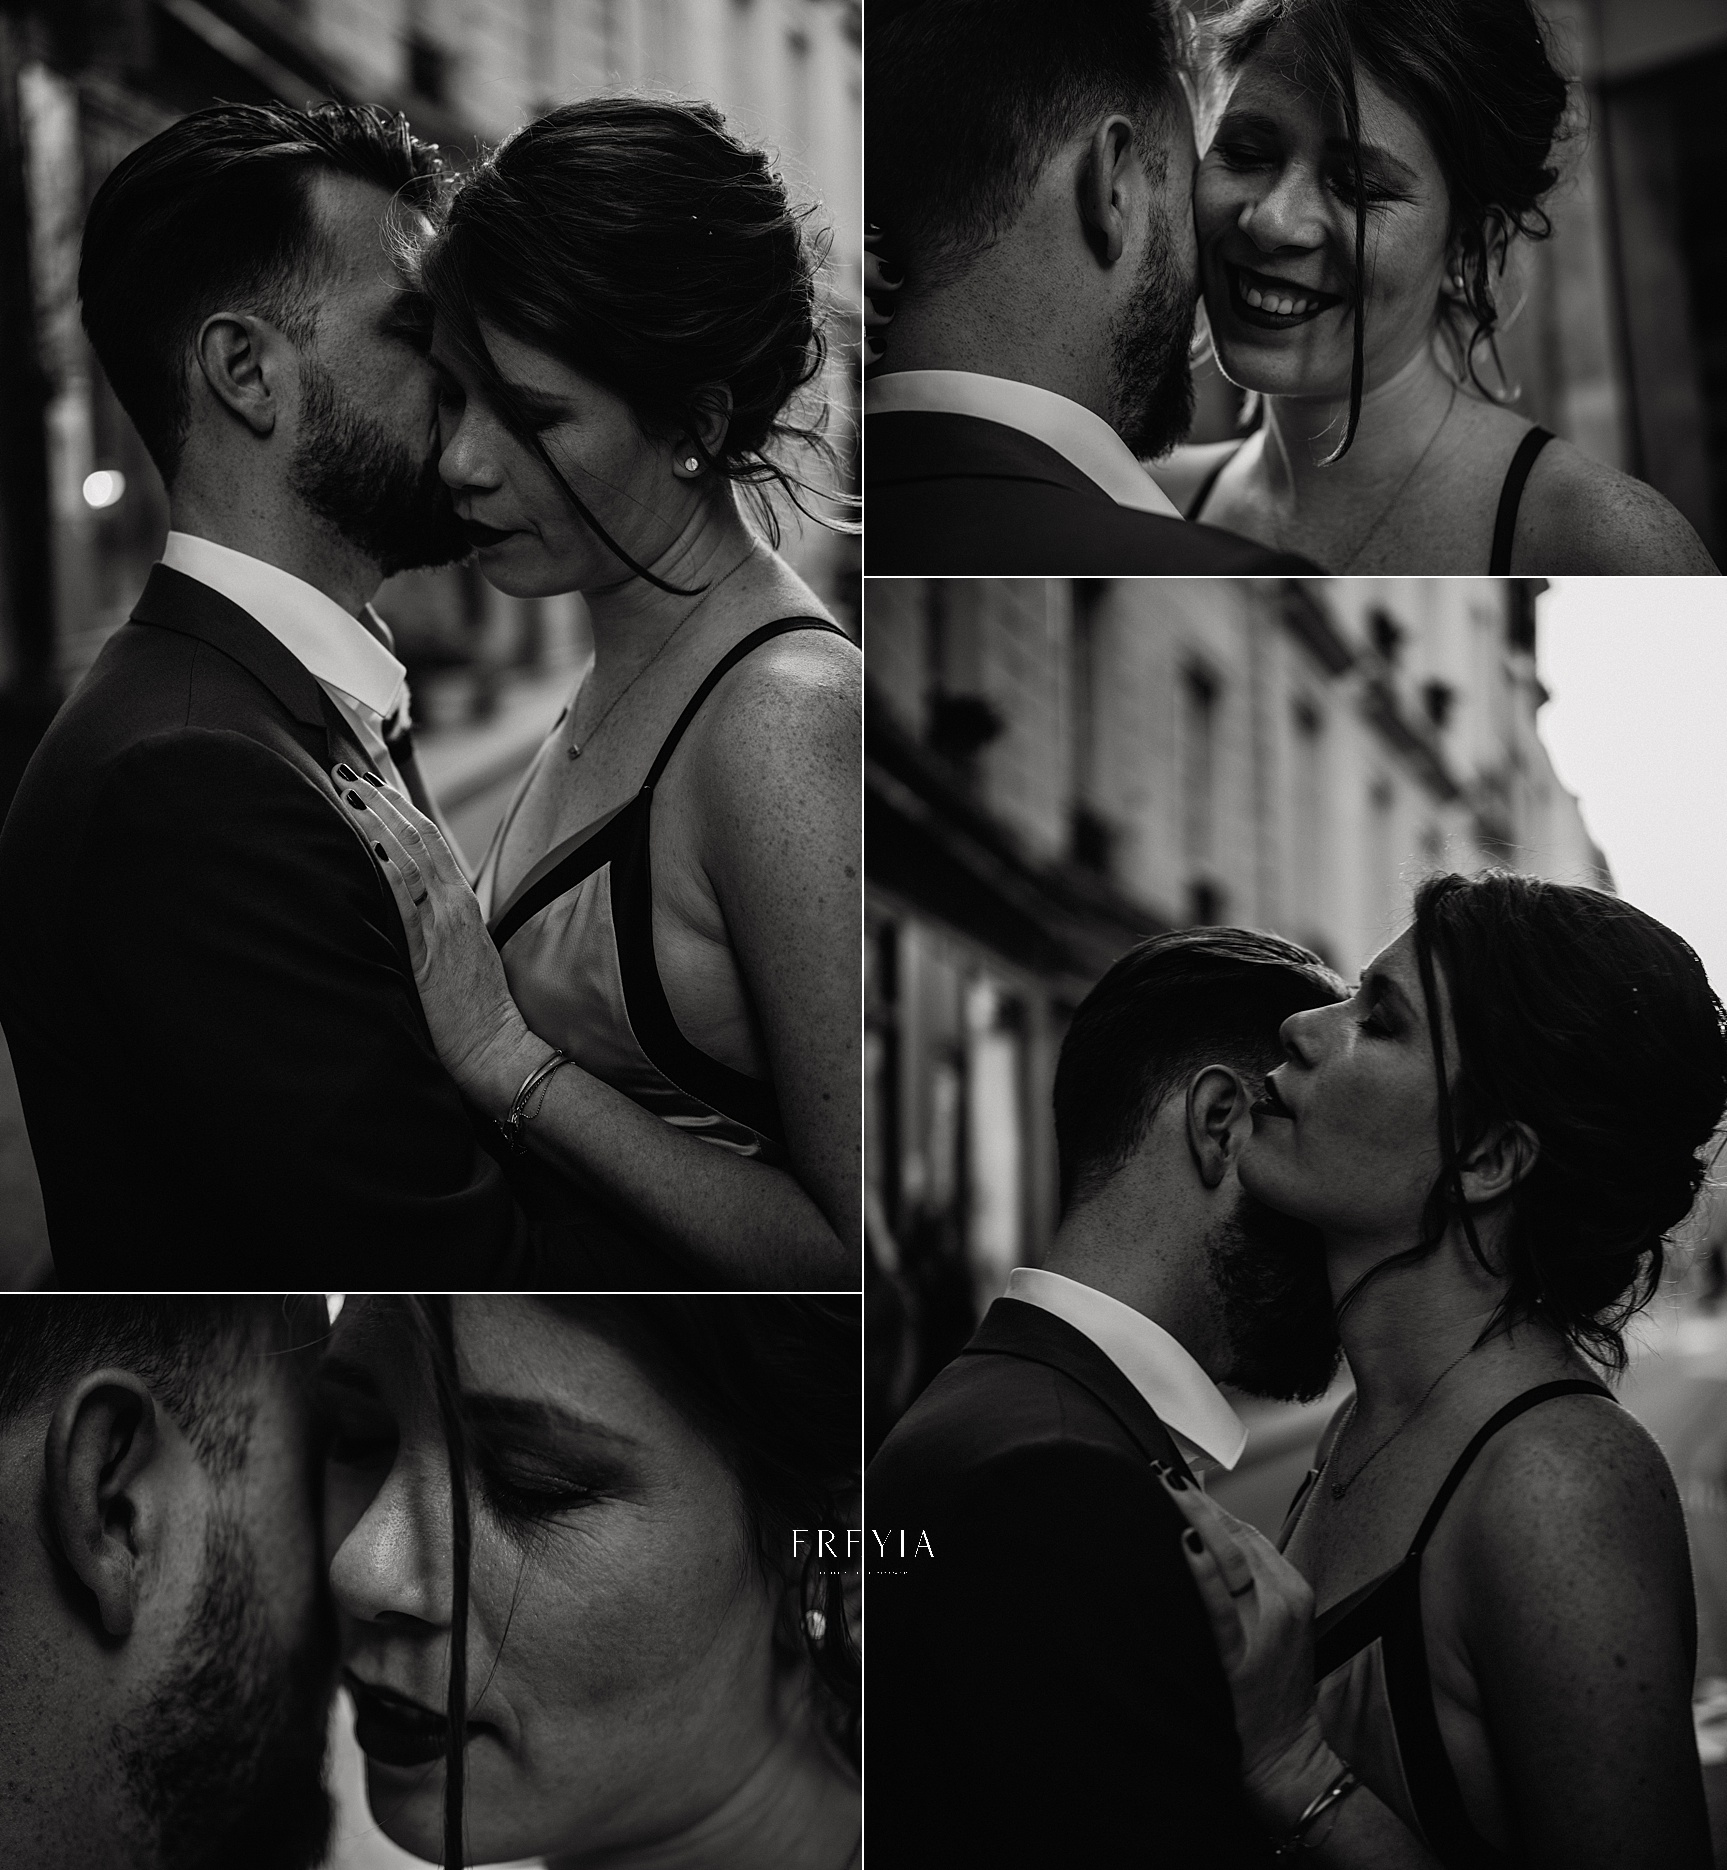 P + F |  mariage reportage alternatif moody intime vintage naturel boho boheme |  PHOTOGRAPHE mariage PARIS france destination  | FREYIA photography_-311.jpg